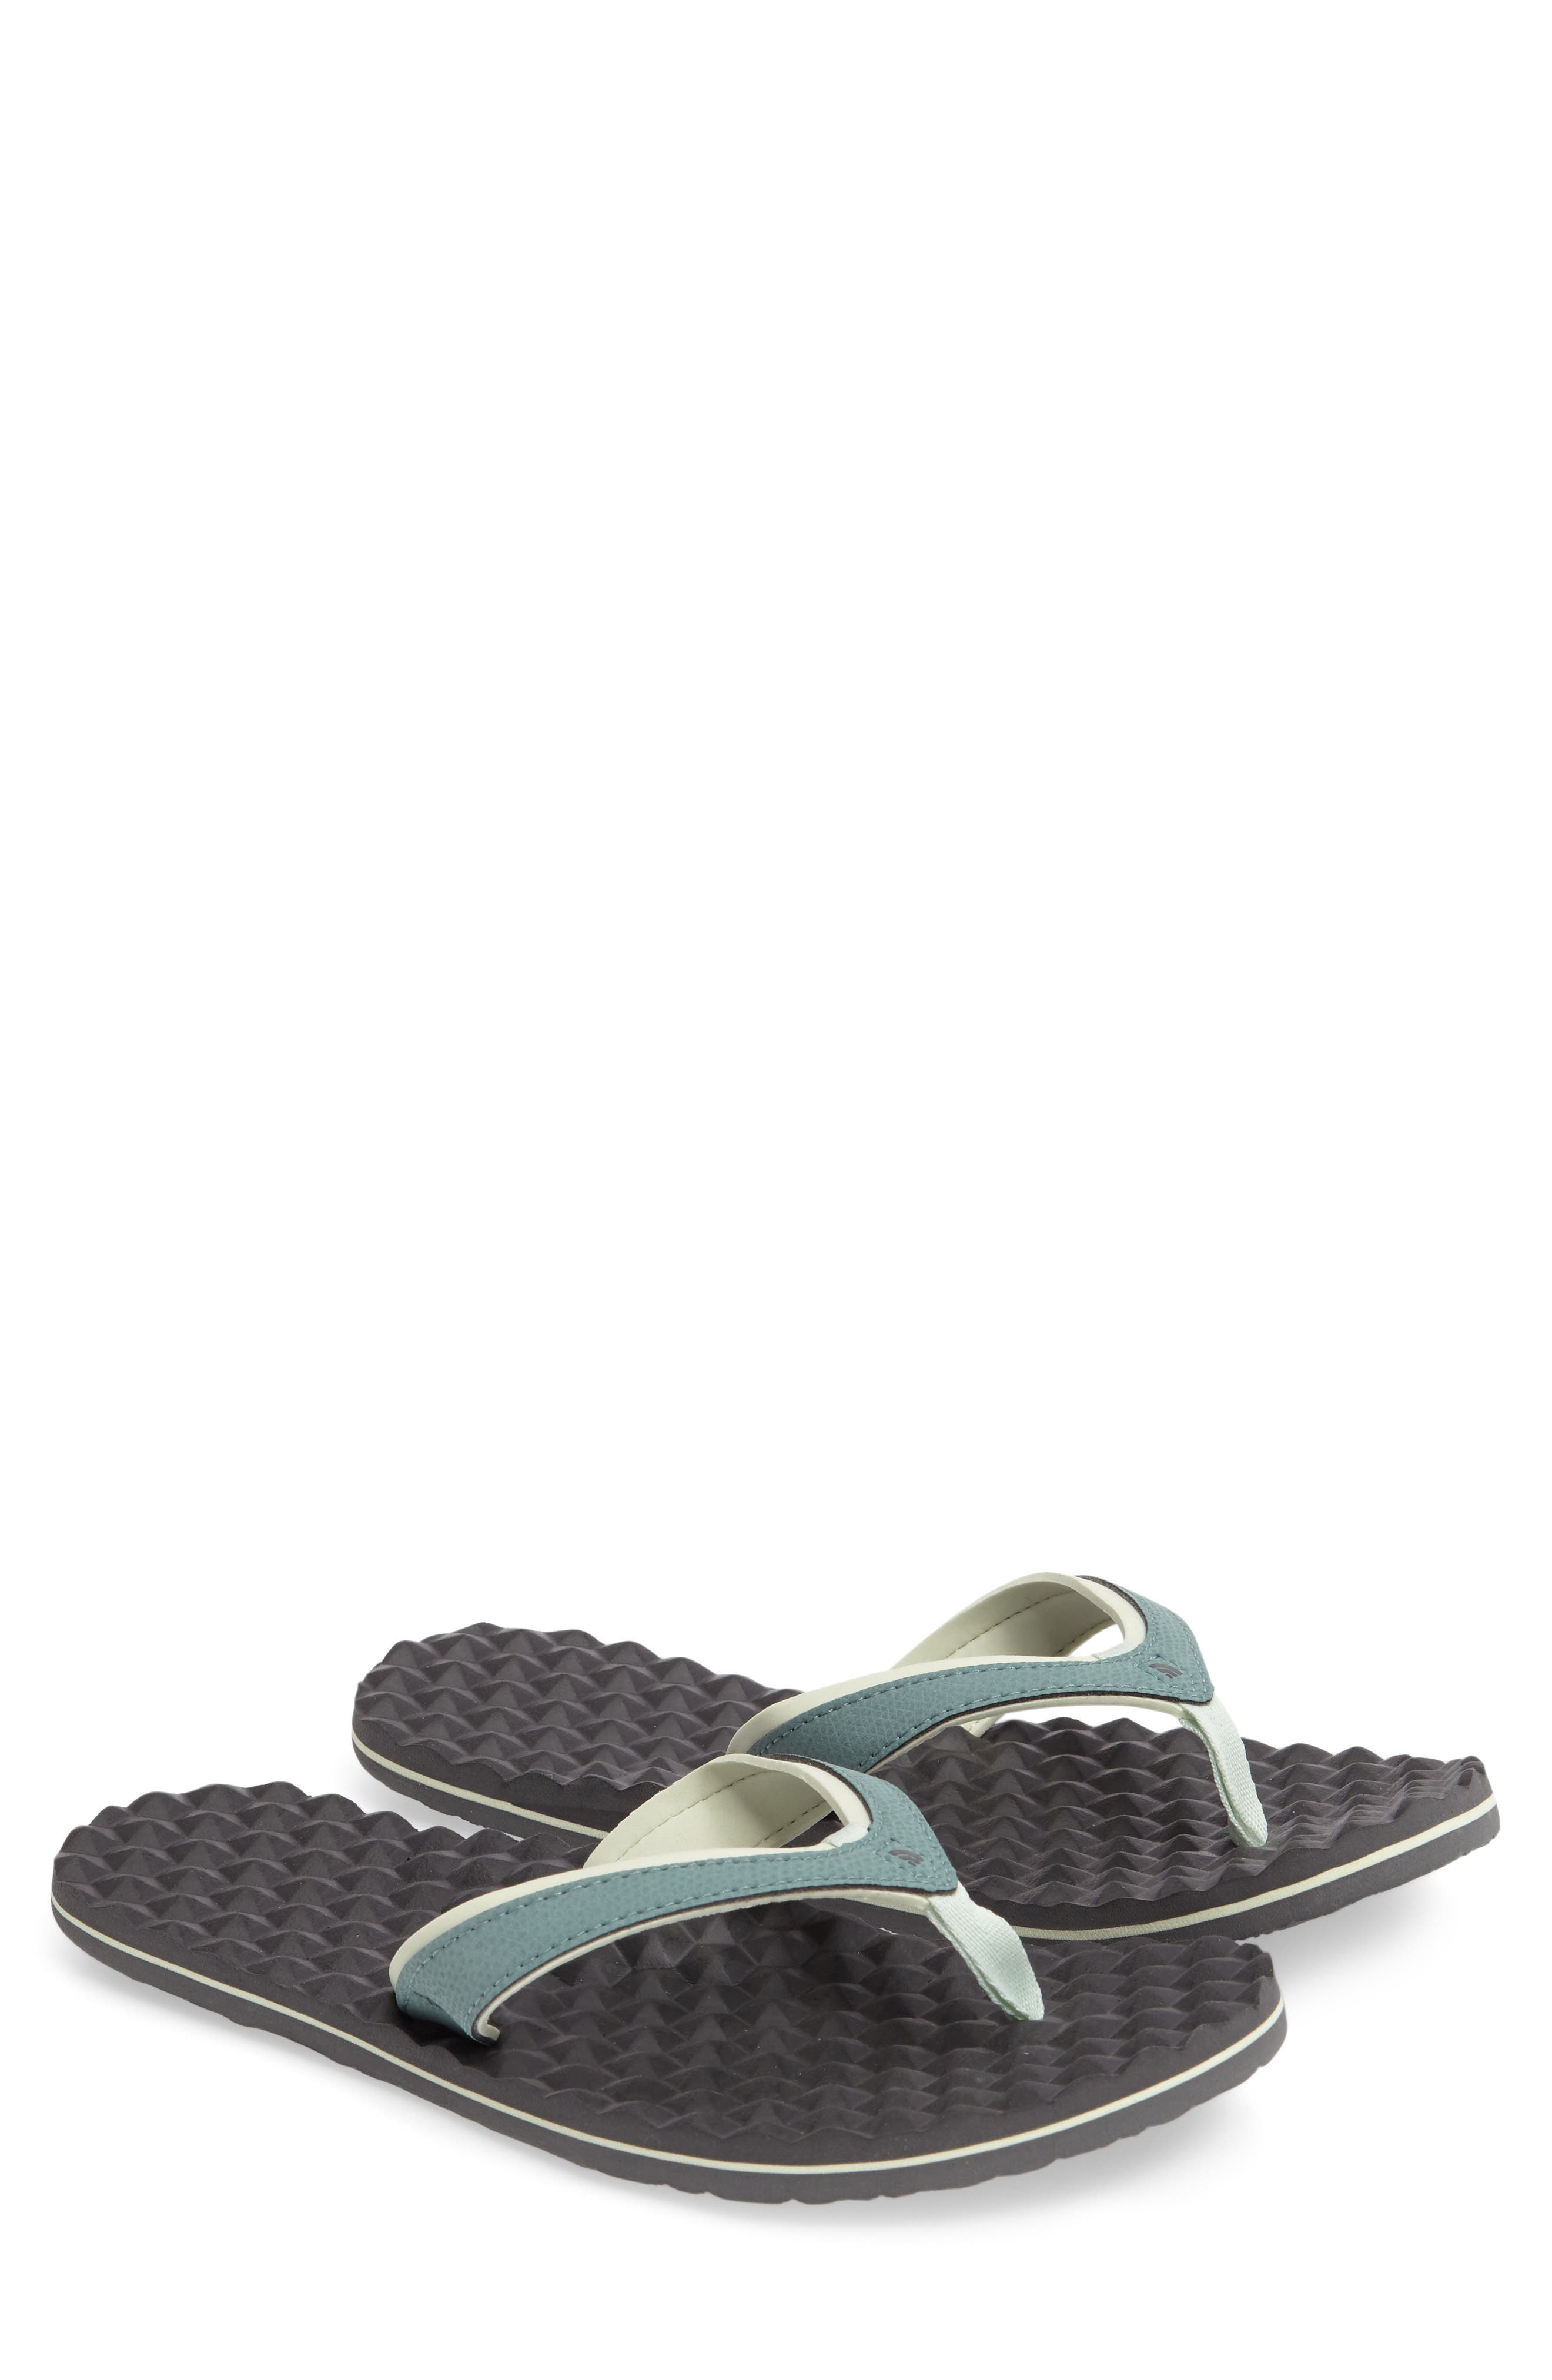 The North Face 'Base Camp - Mini' Flip Flop